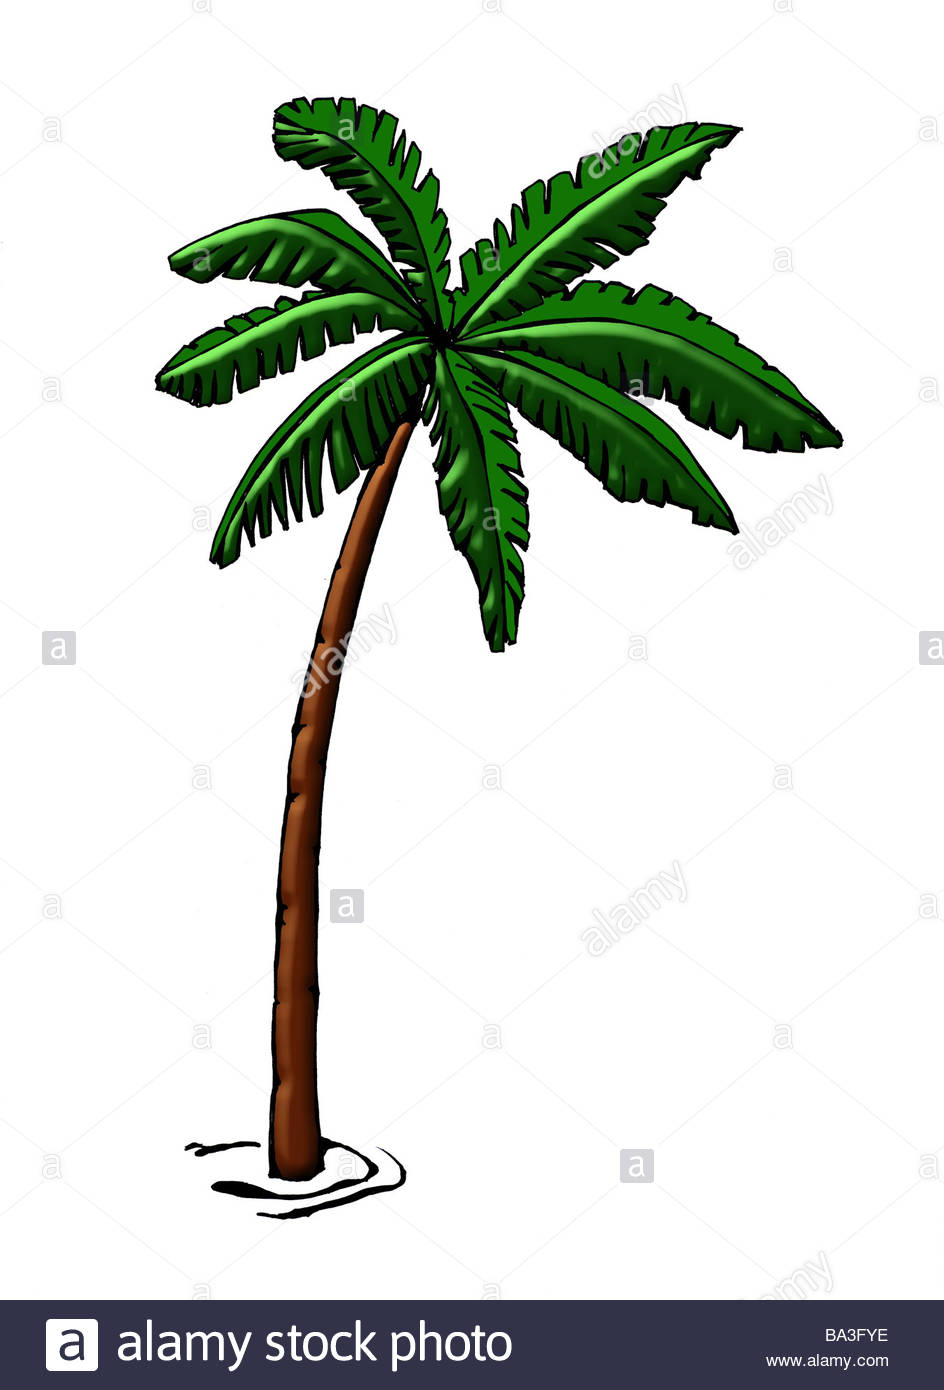 944x1390 Illustration Palm Graphics Drawing Watercolor Tree Coconut Palm